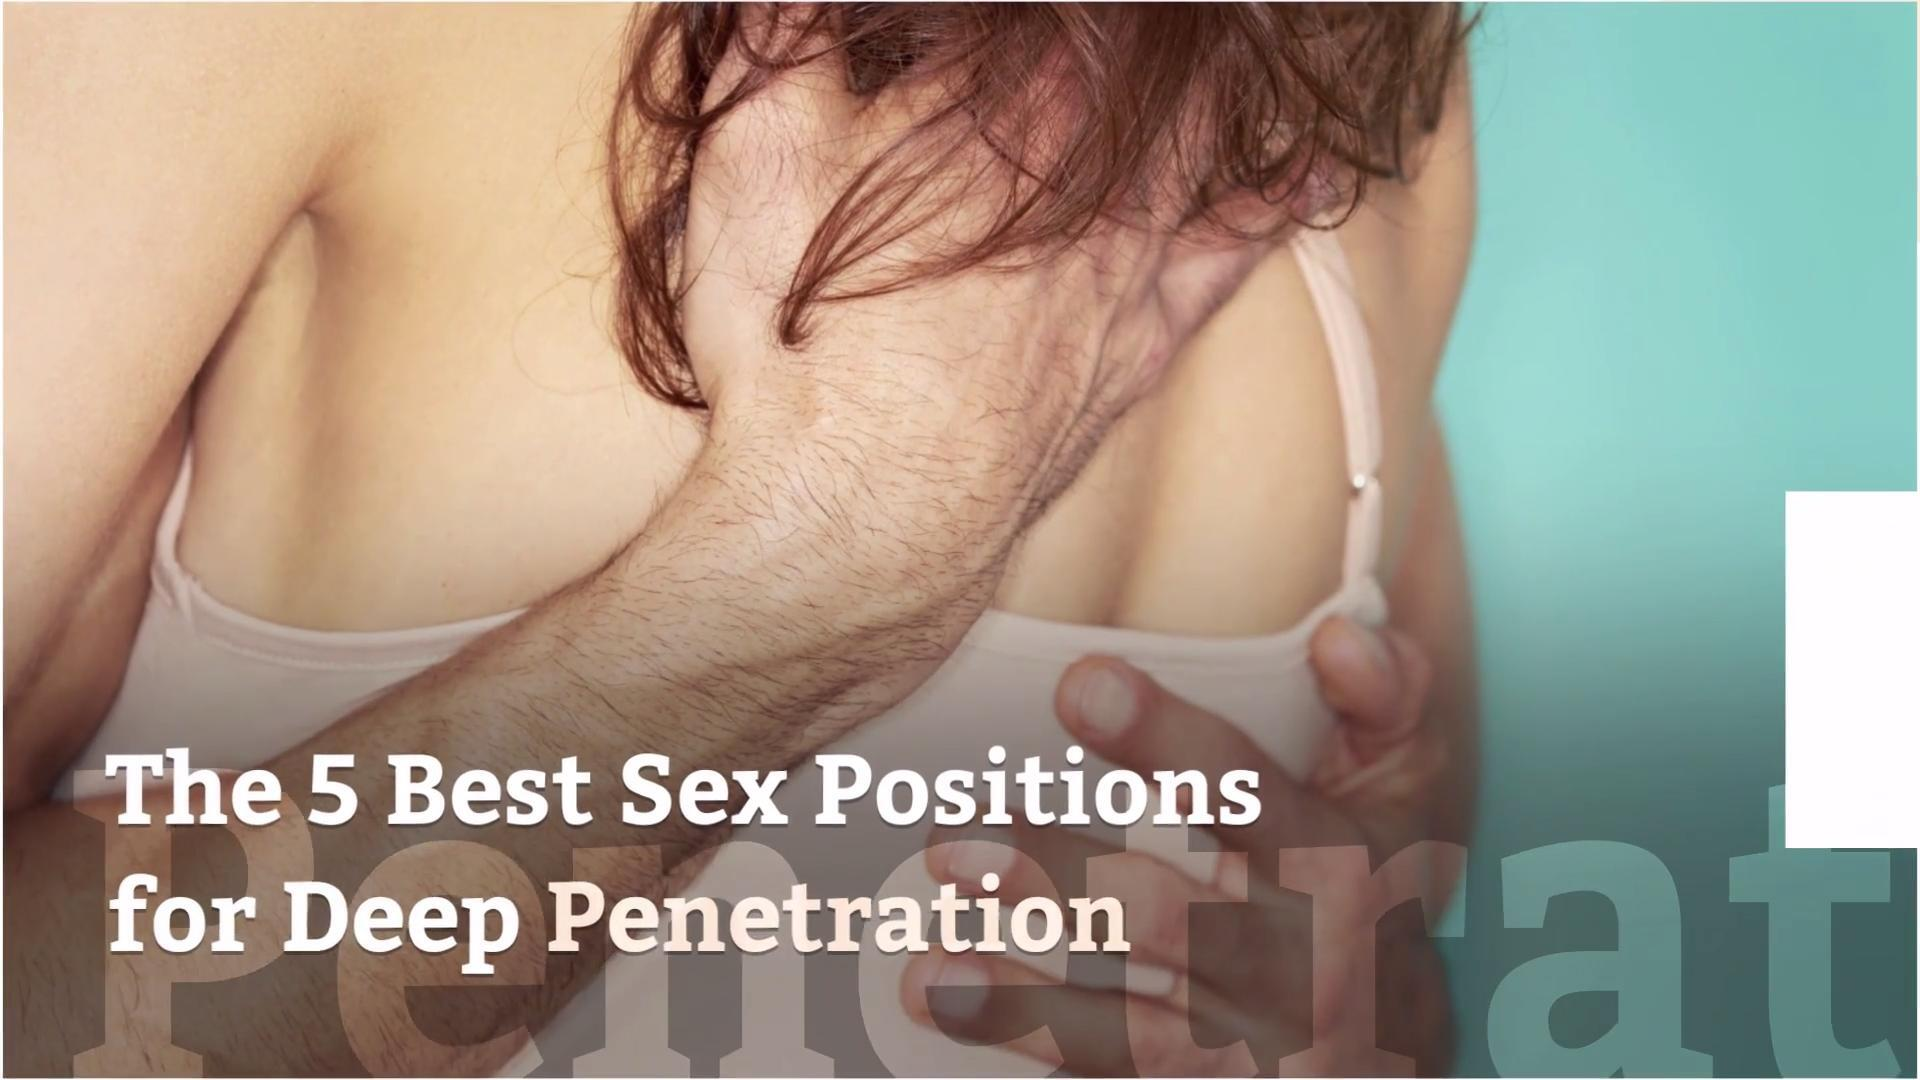 Penetration easy positions sex for 12 Best